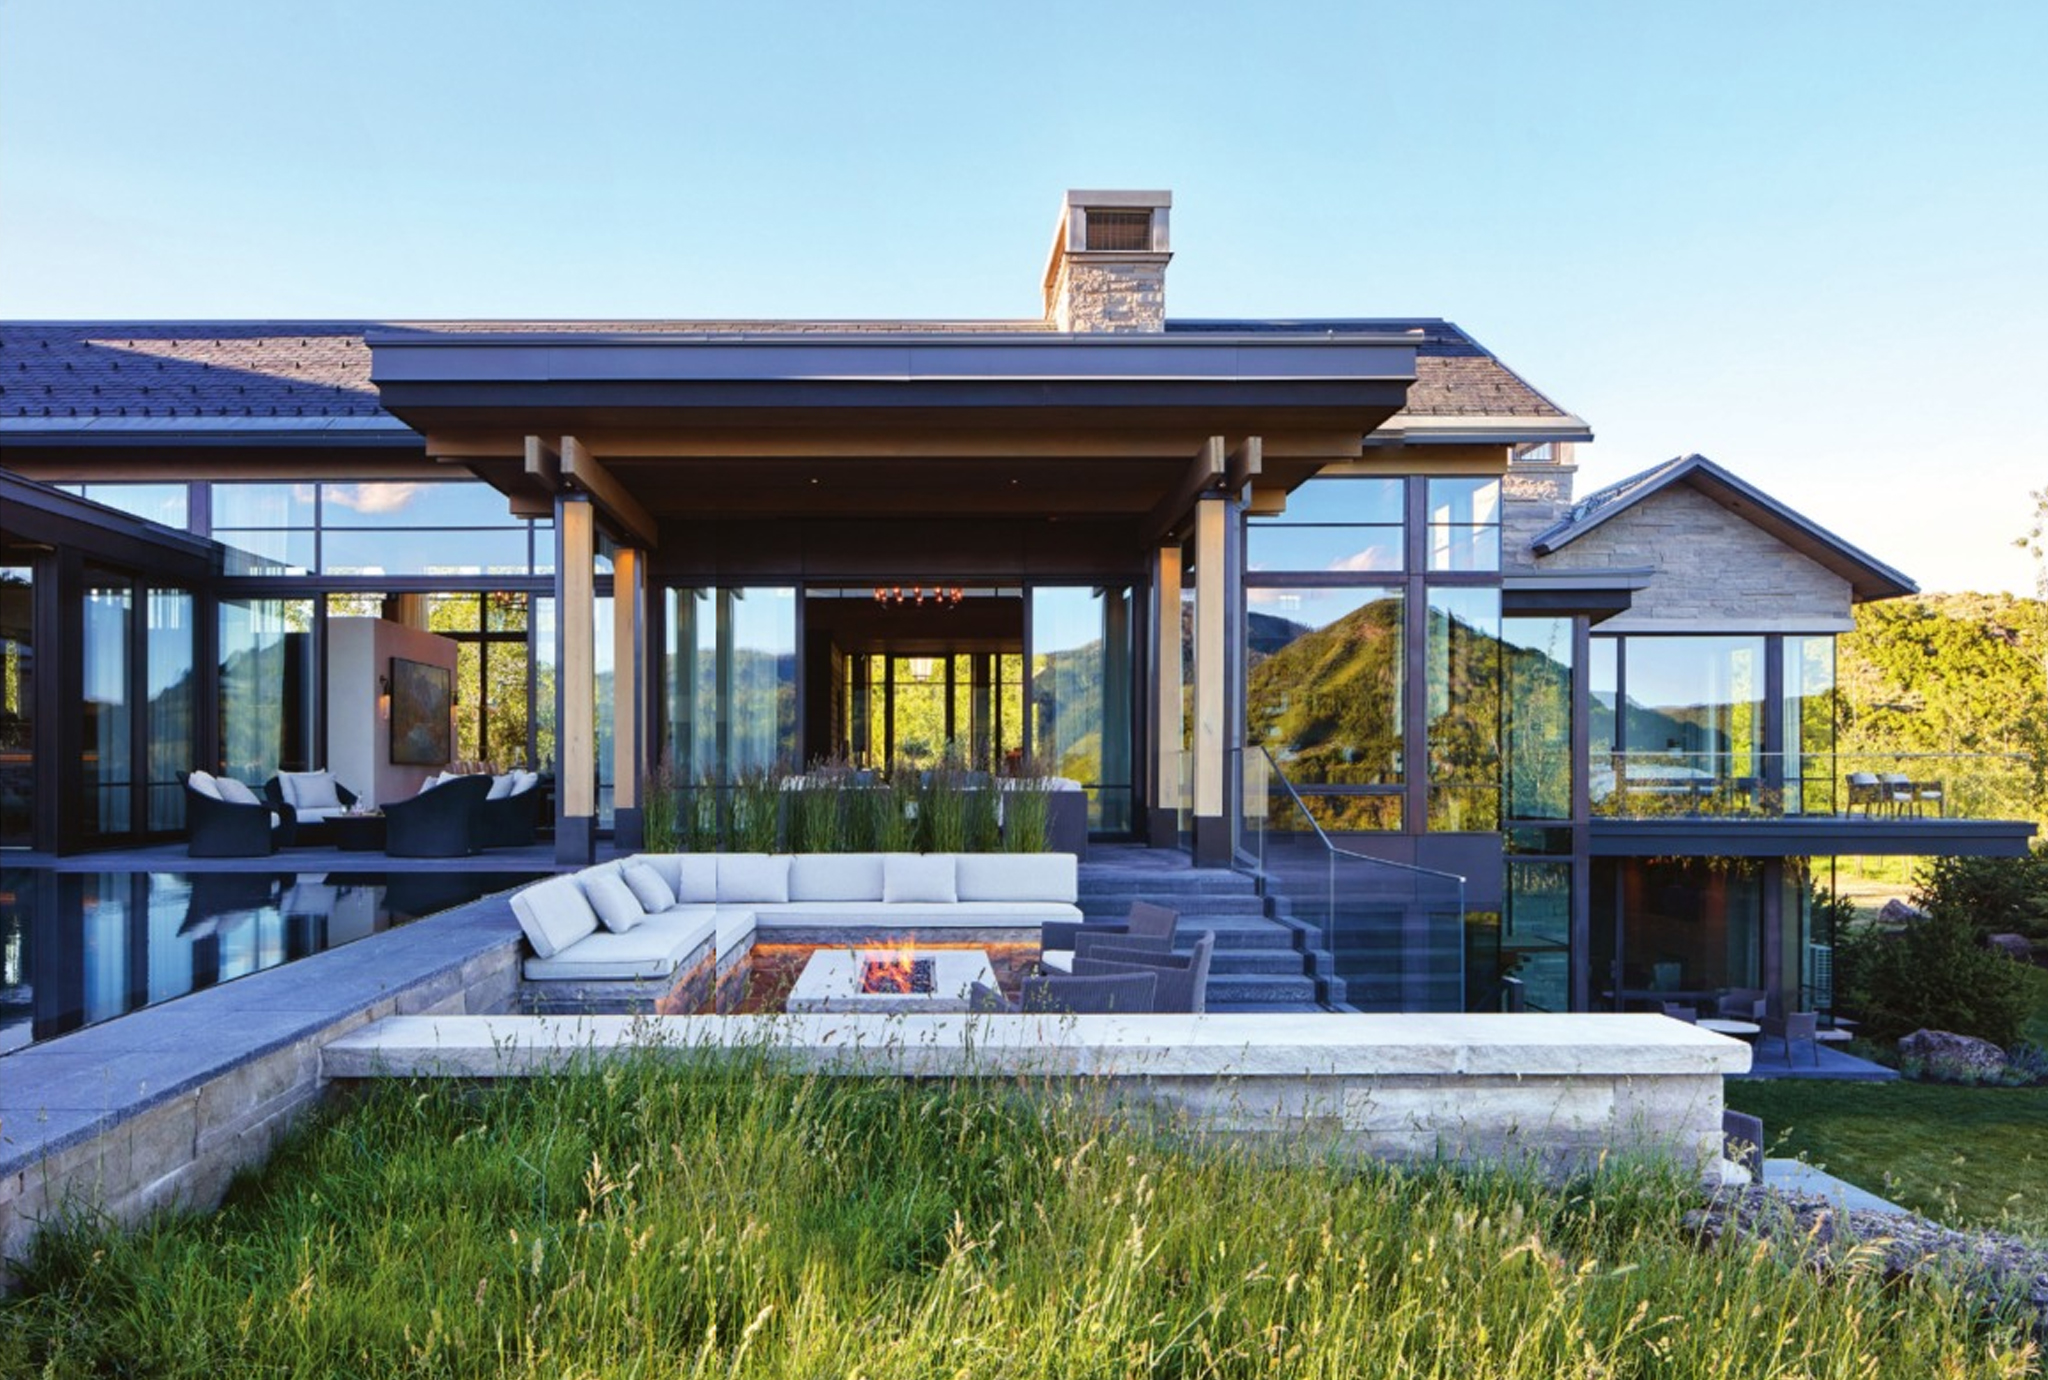 This stunning Park City, UT retreat features Brombal Italian windows and doors and won Mountain Living's Home of the Year award